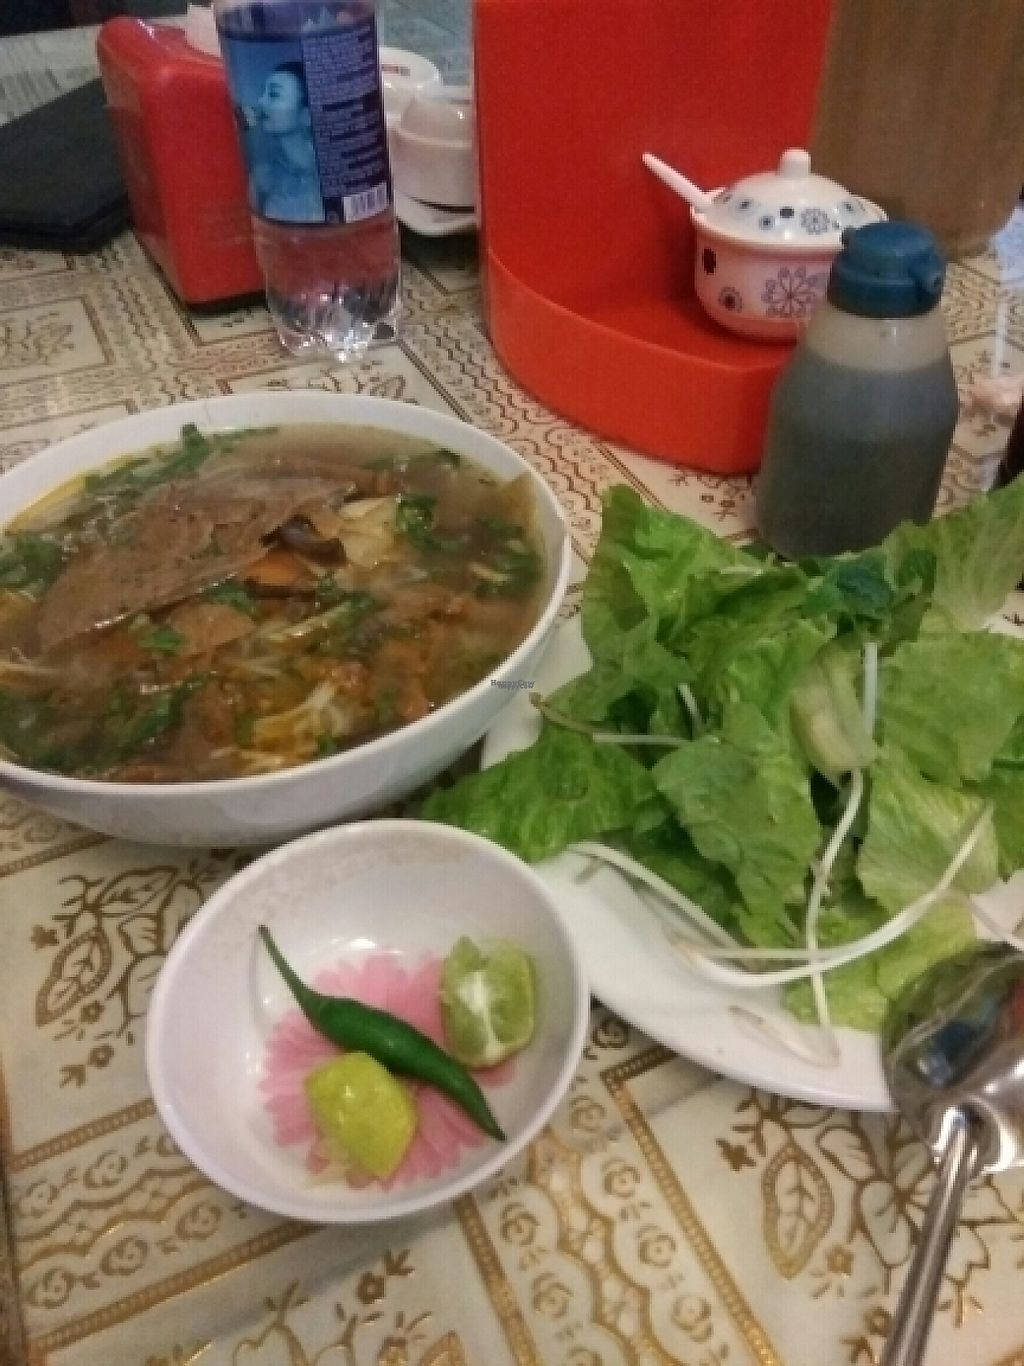 """Photo of Loving Hut - Bien Tinh Thuong  by <a href=""""/members/profile/Miggi"""">Miggi</a> <br/>Pho <br/> December 31, 2016  - <a href='/contact/abuse/image/36503/206467'>Report</a>"""